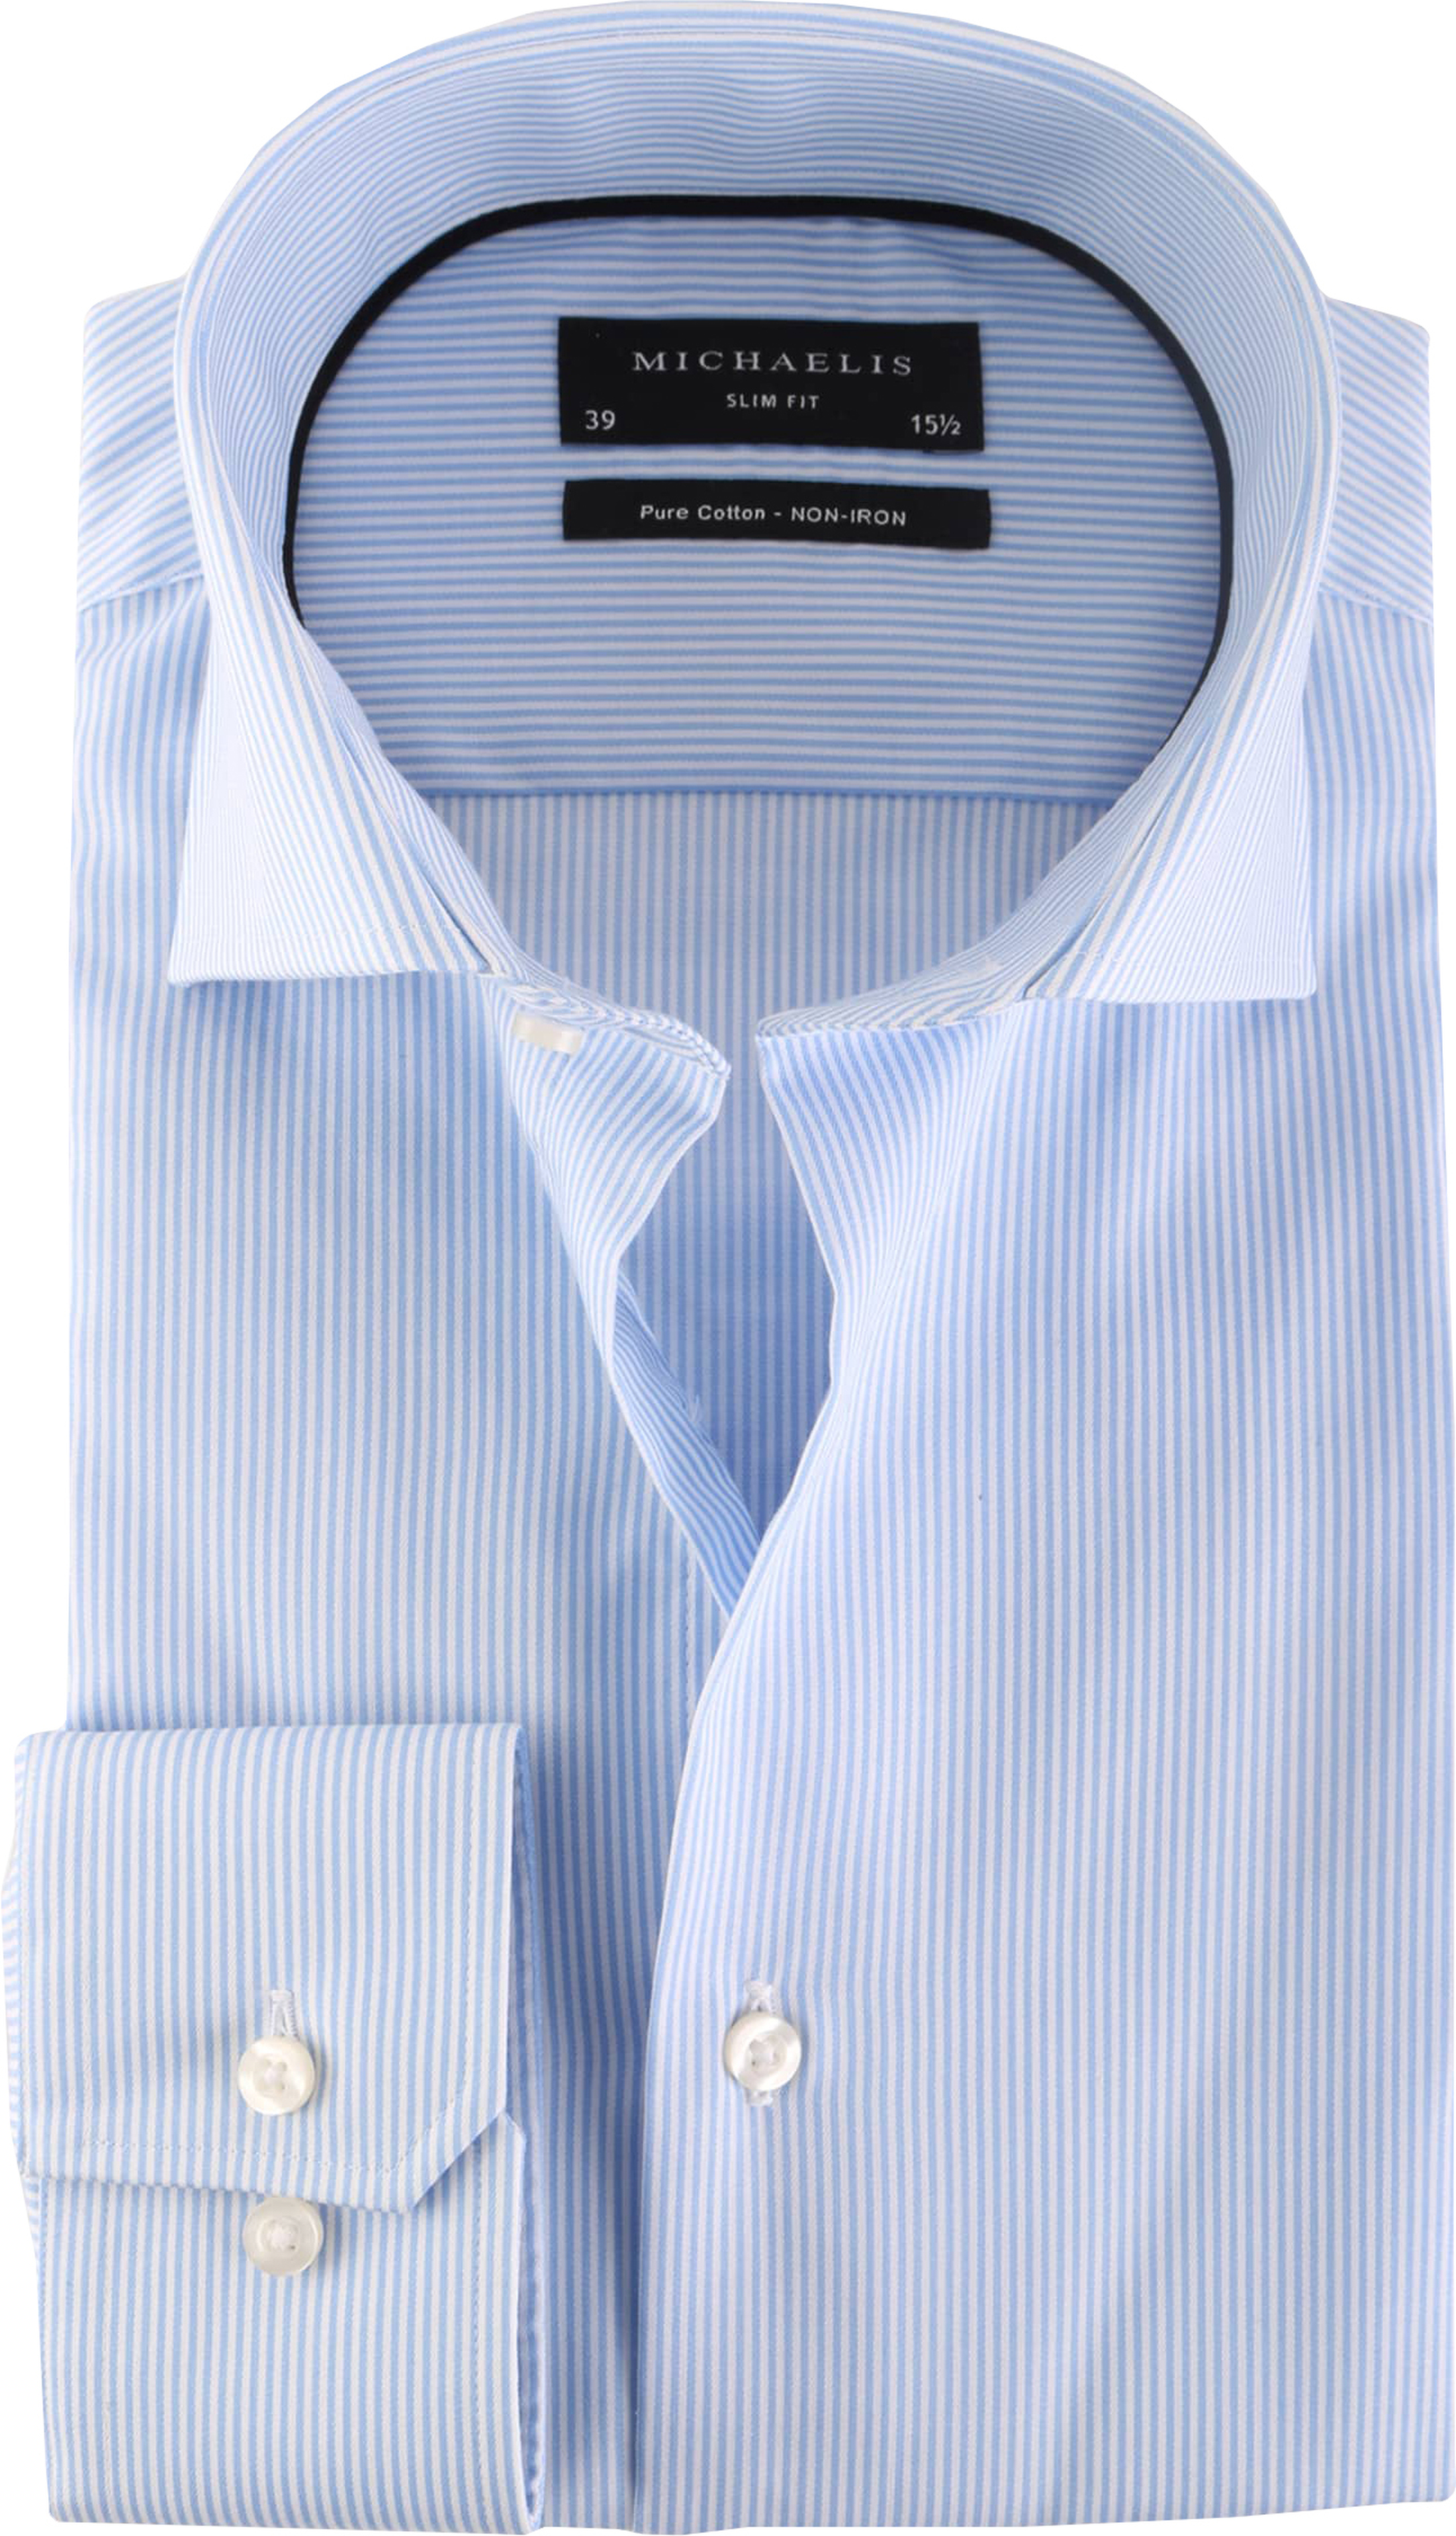 Michaelis Overhemd Slim Fit Blue Stripe foto 0